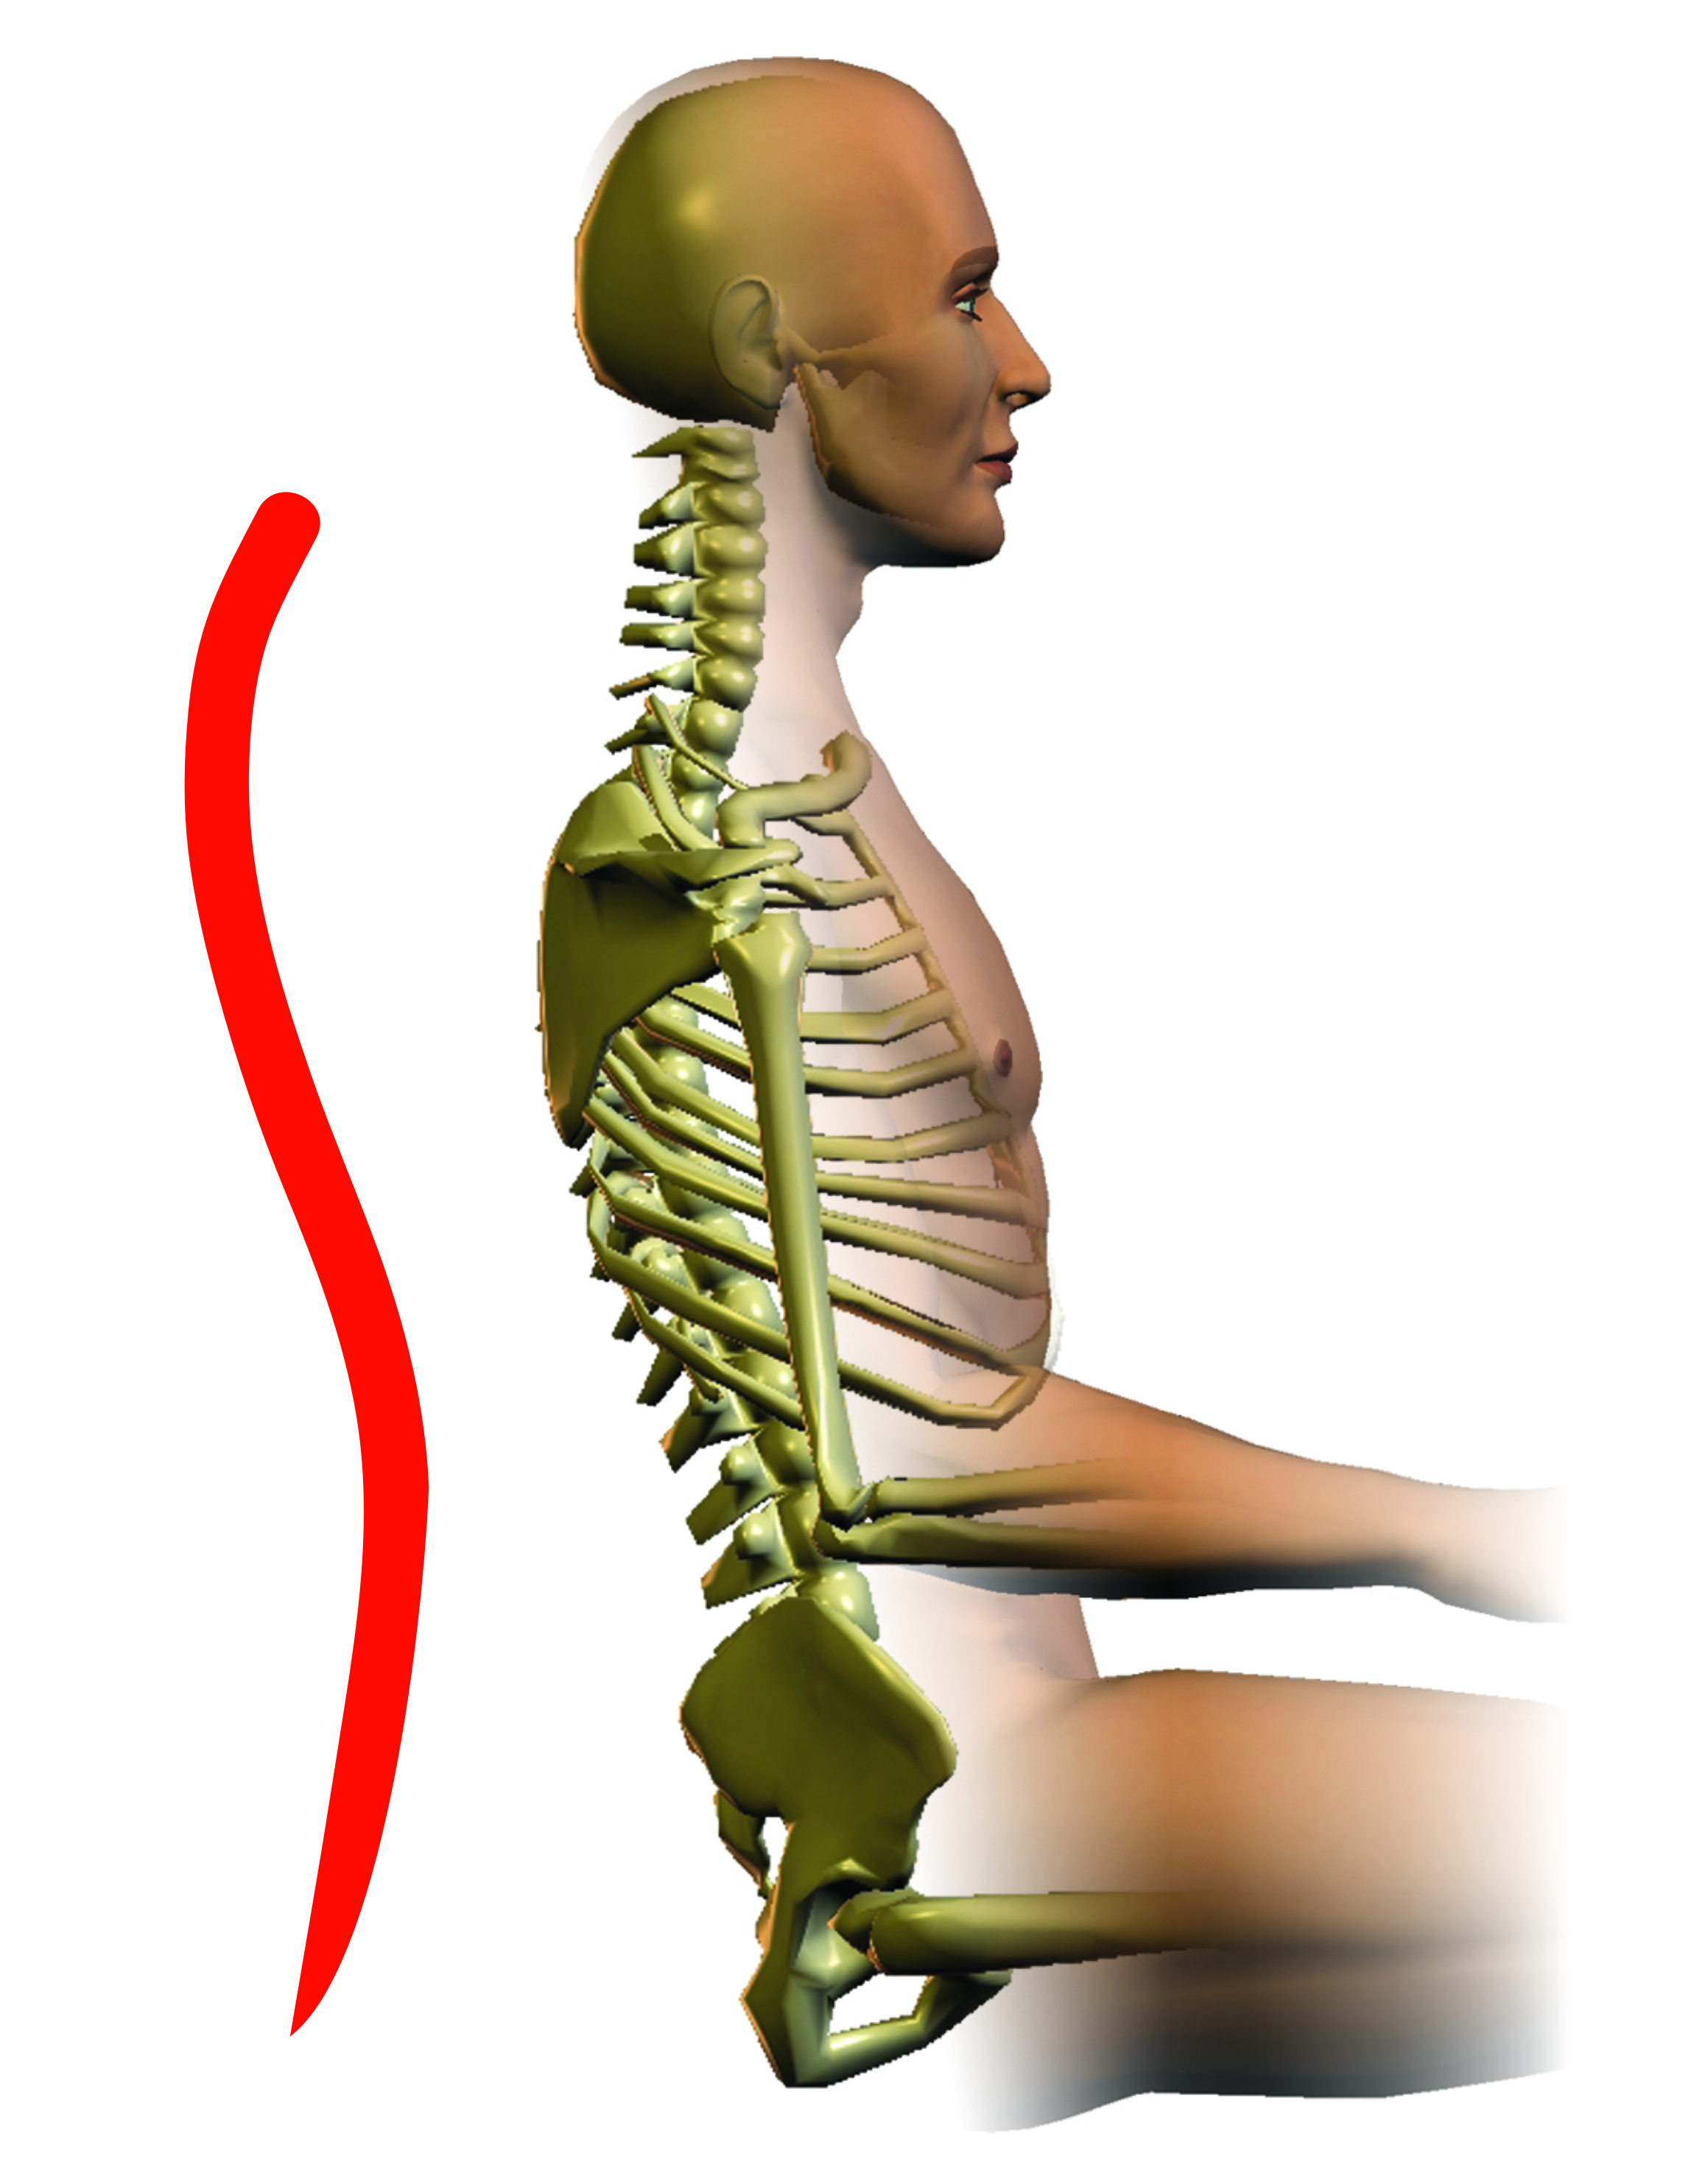 upright-spine-thumbnail.jpg